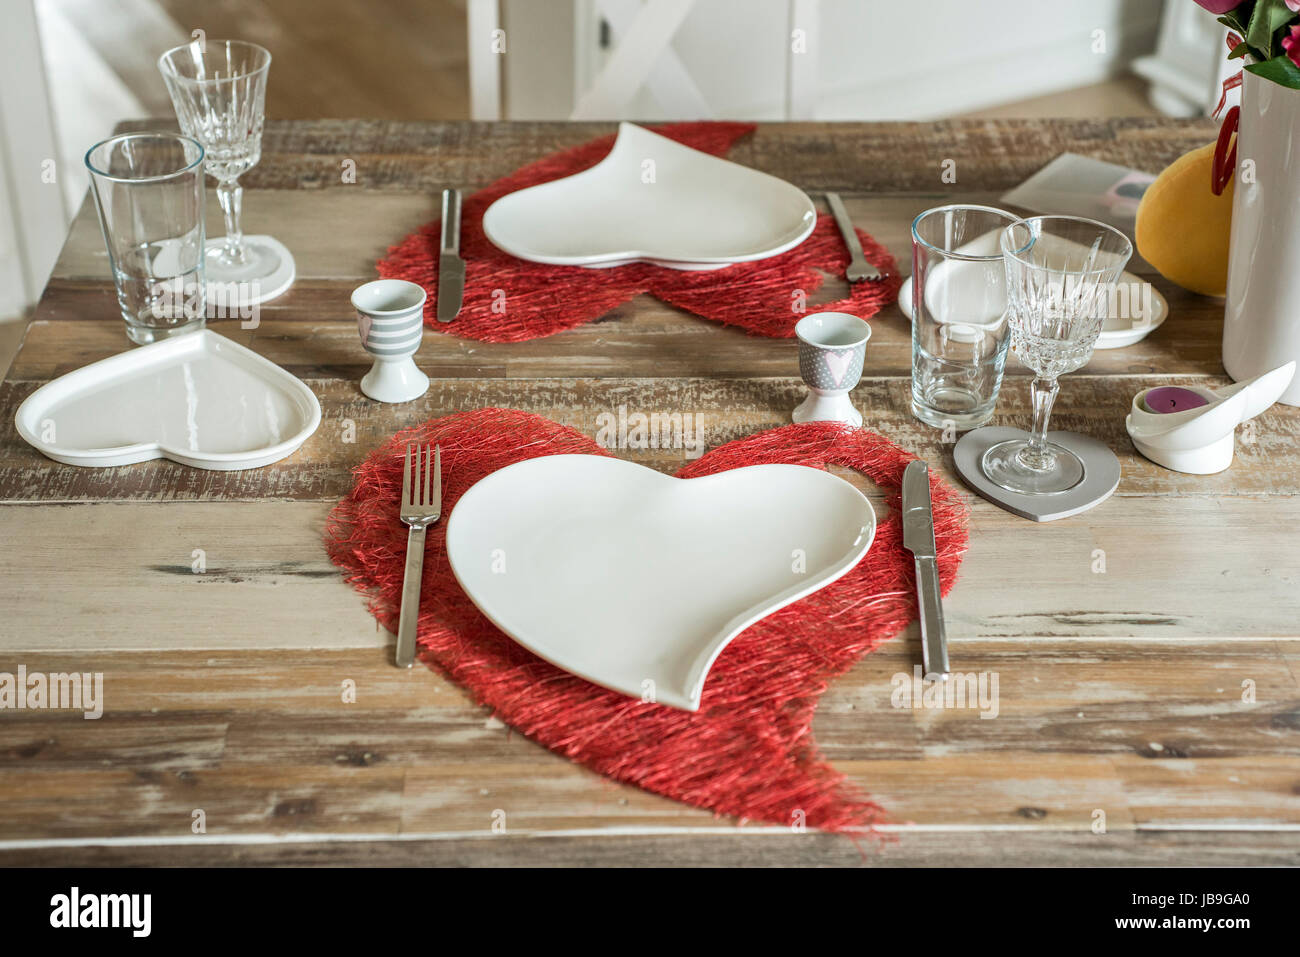 Valentines Day Dinner With Setting Romantic Love For Two Wooden